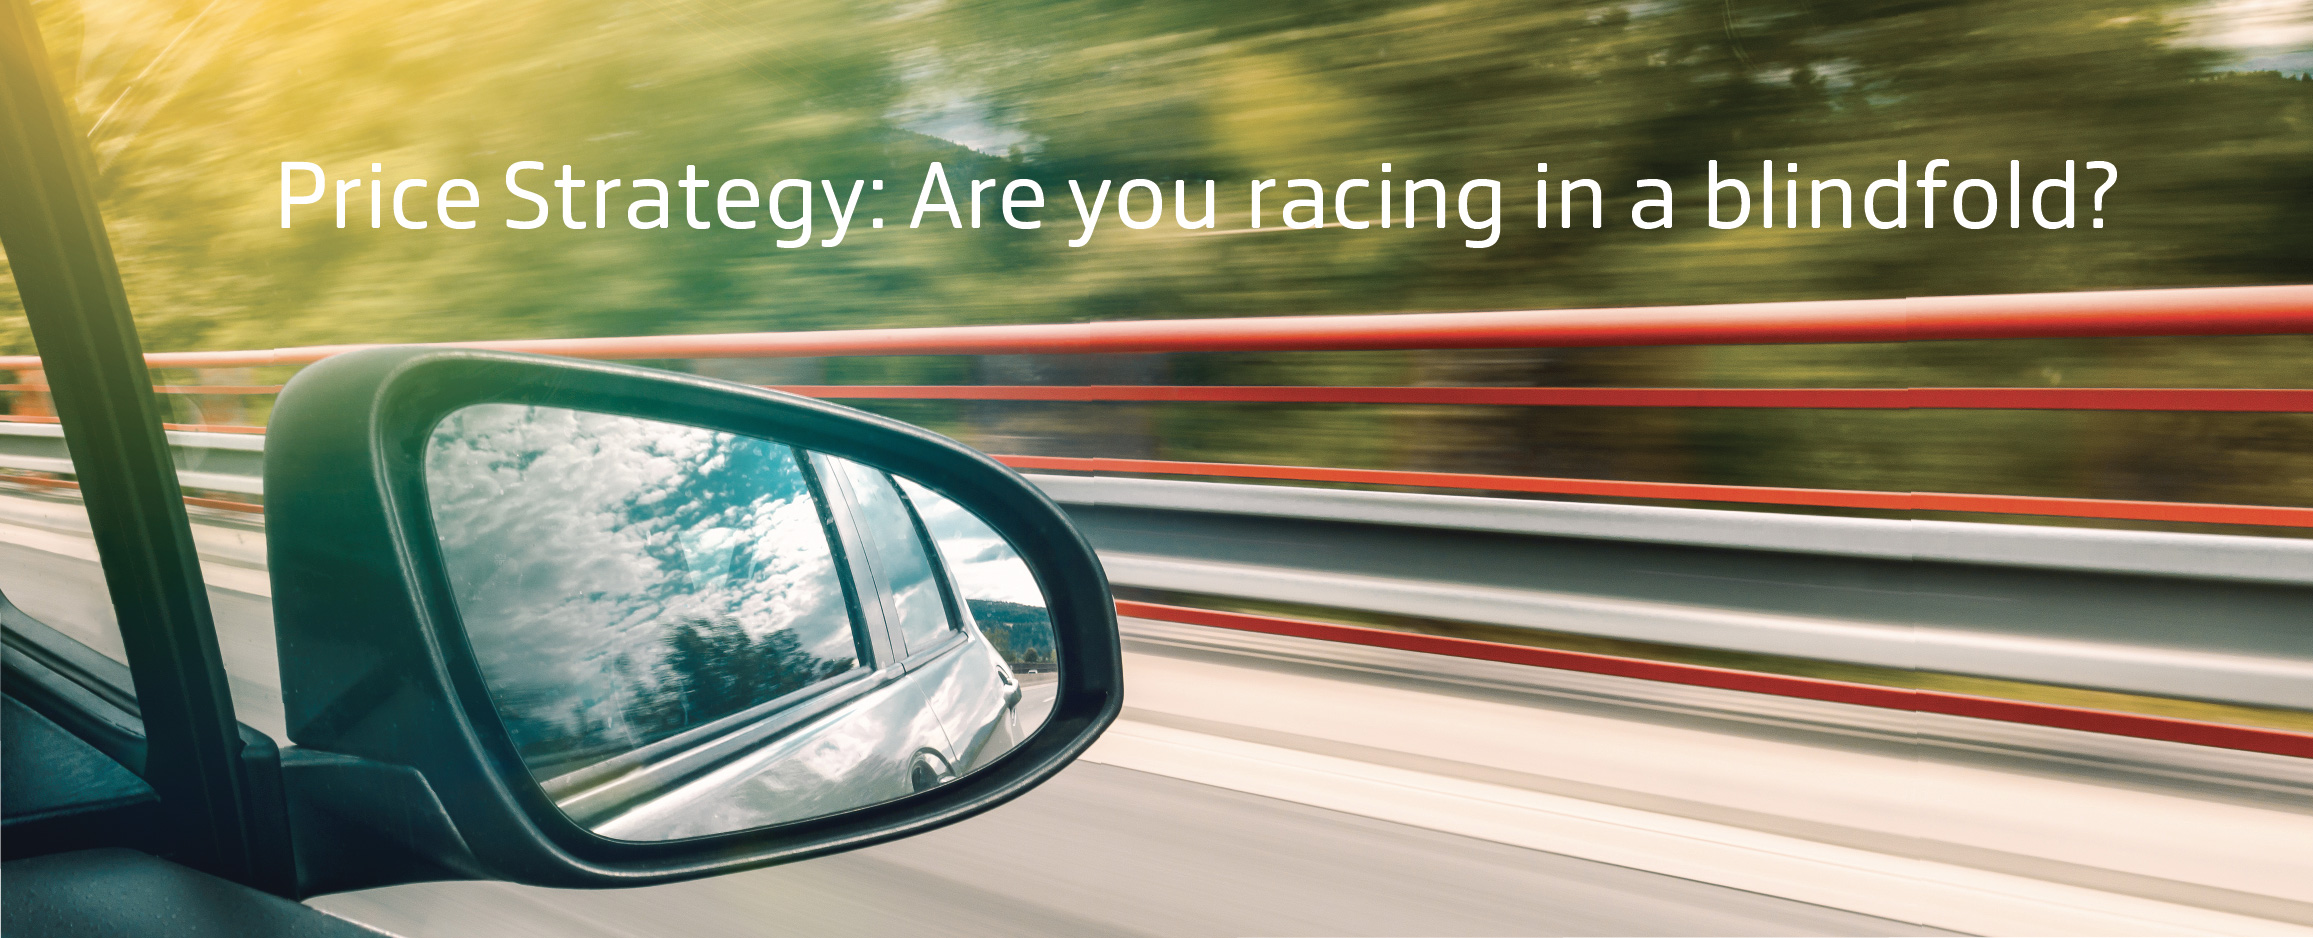 "Picture of fast car with text ""price strategy: are you racing in a blindfold?"""